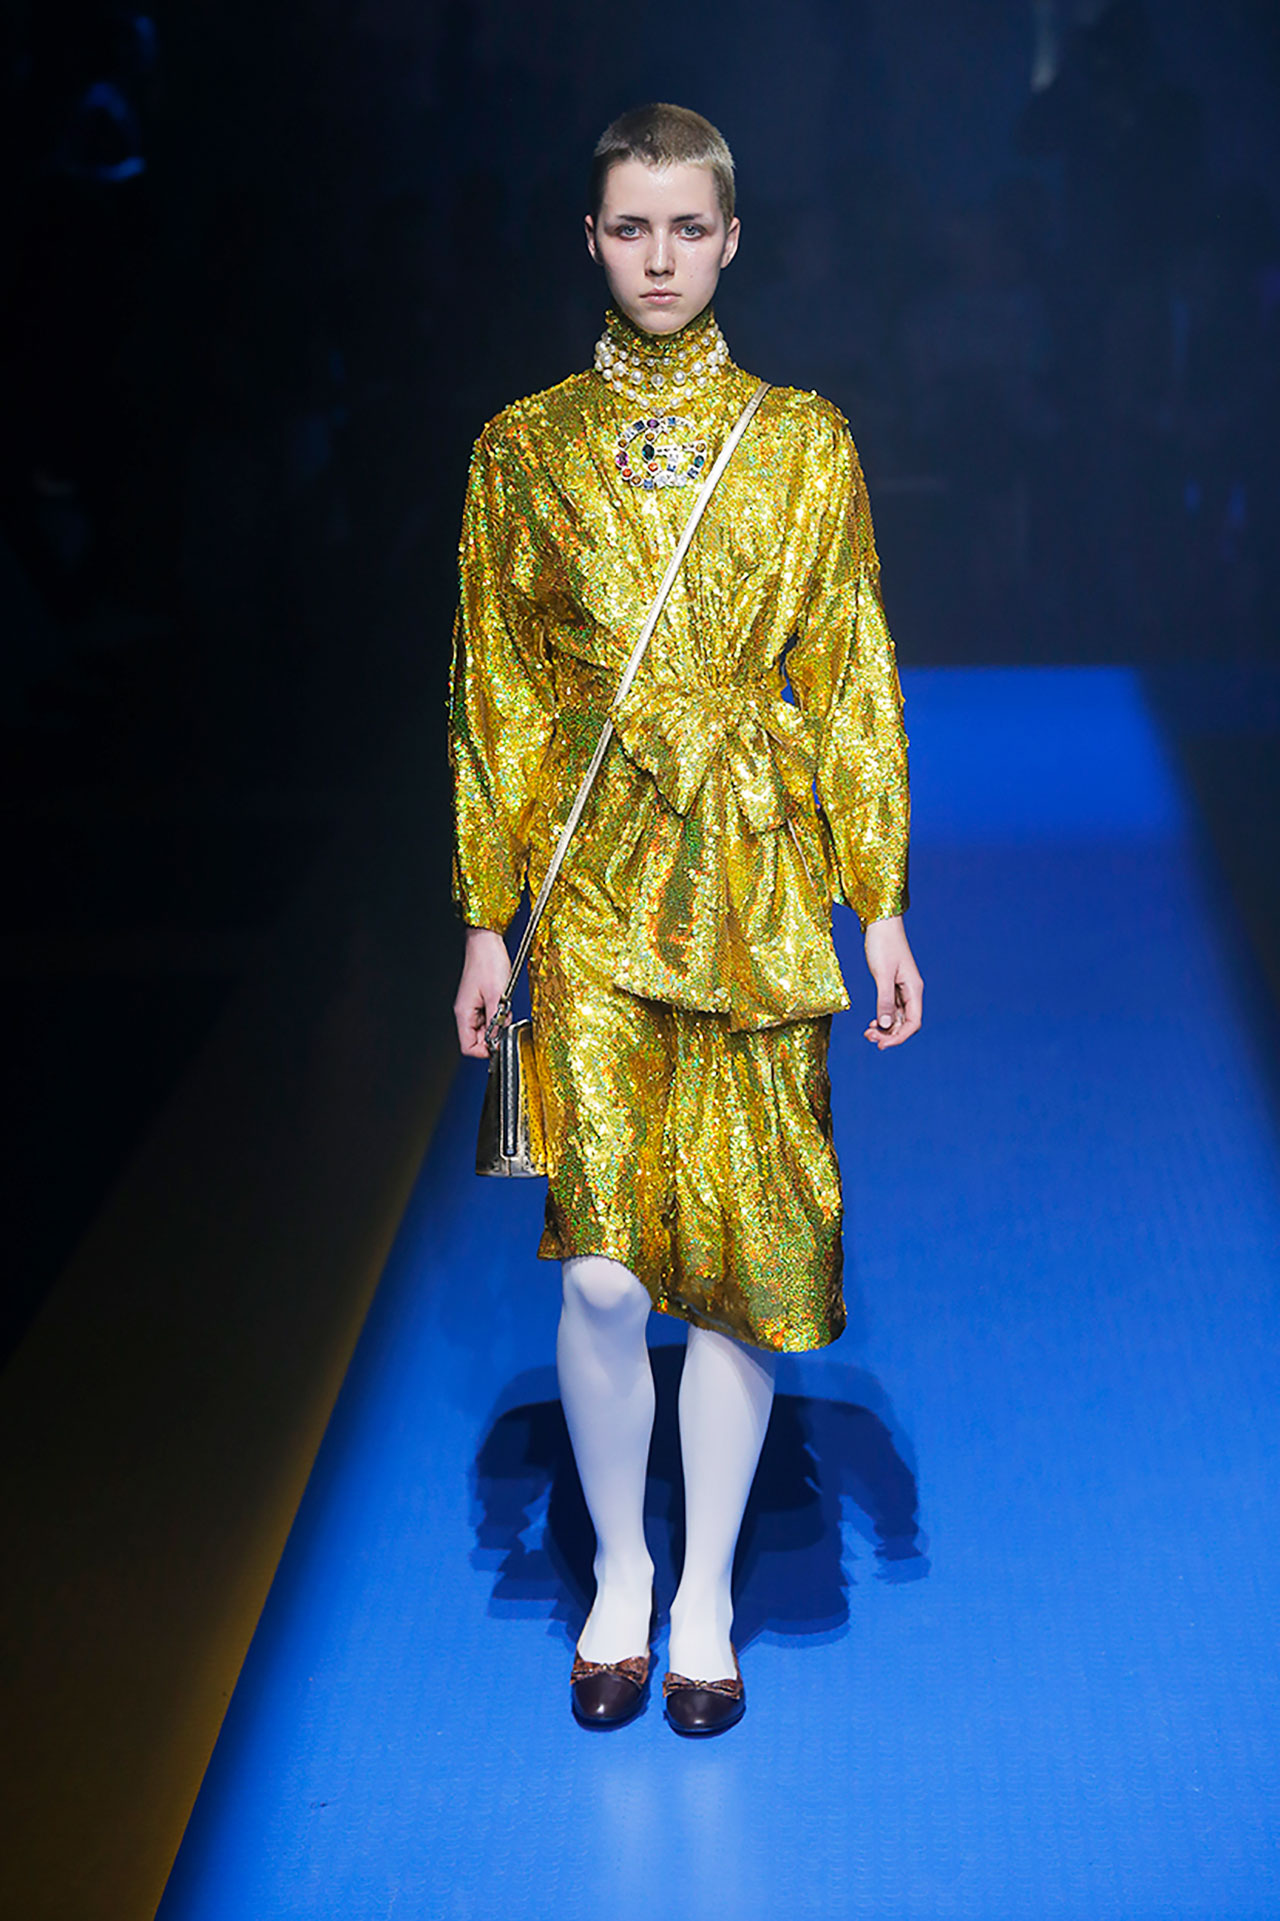 milan-fashion-week-trends-spring-2018-serious-sequins-gucci-10